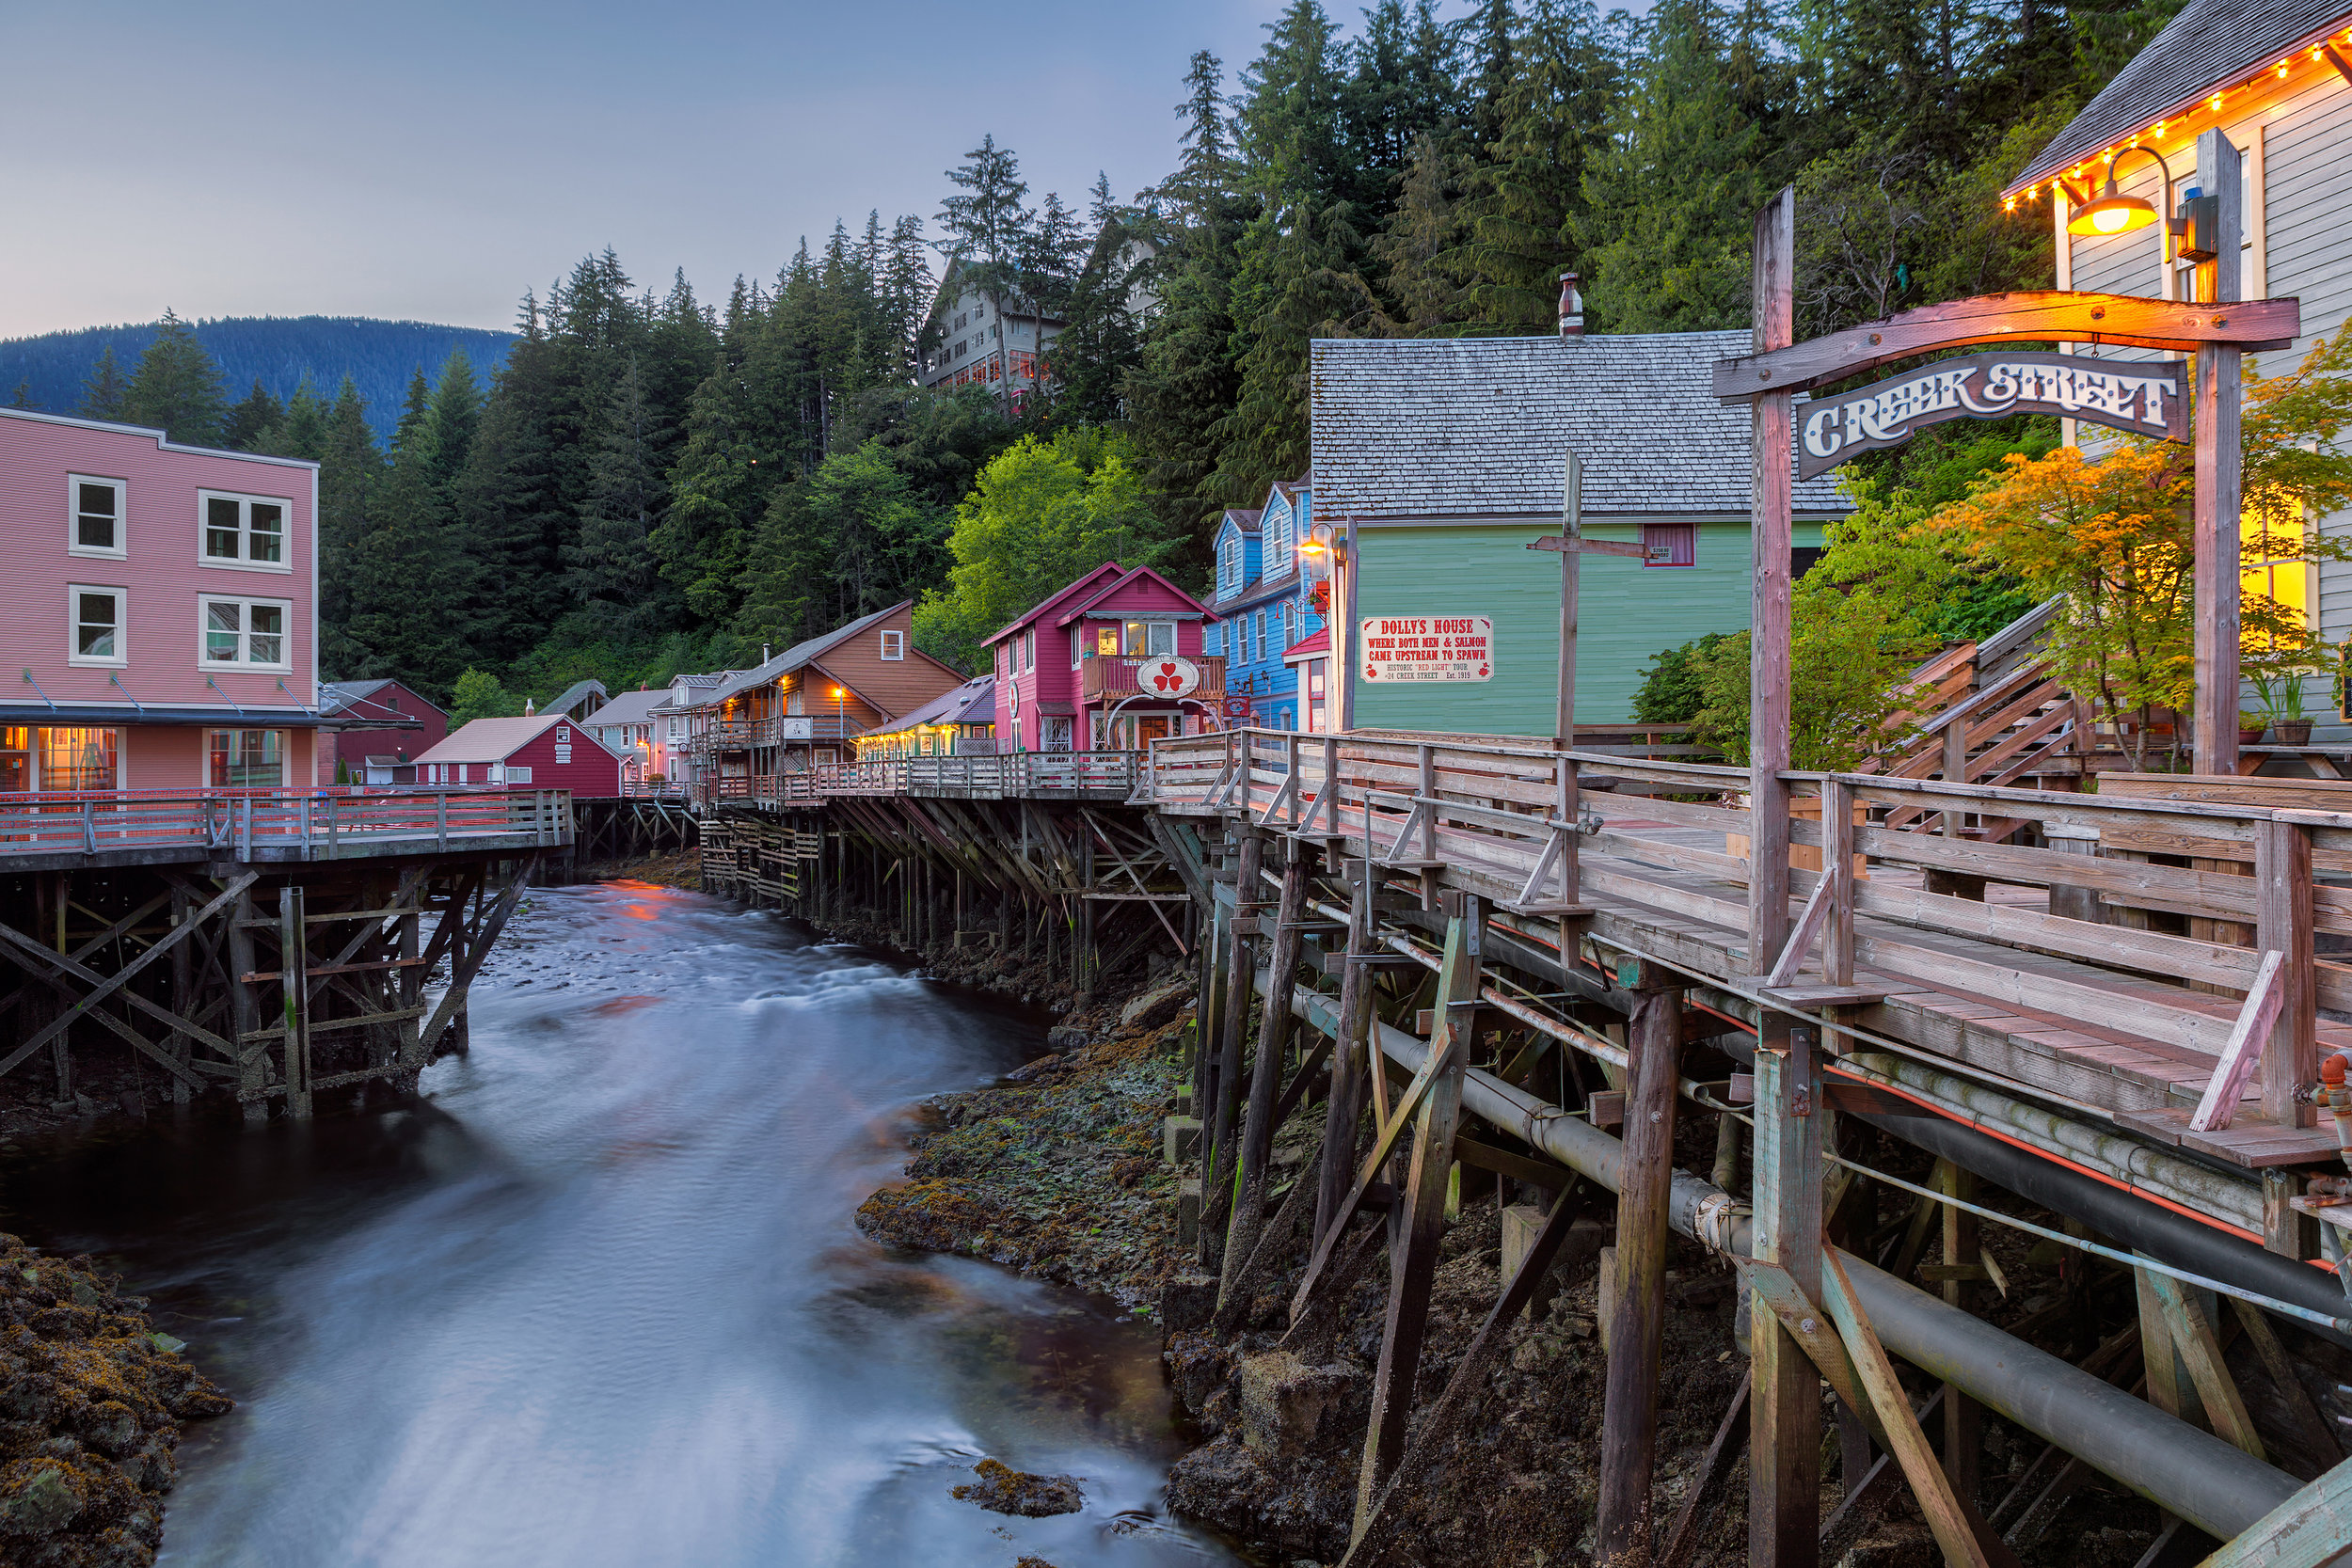 Inn at Creek Street - a collection of properties in the heart of Ketchikan